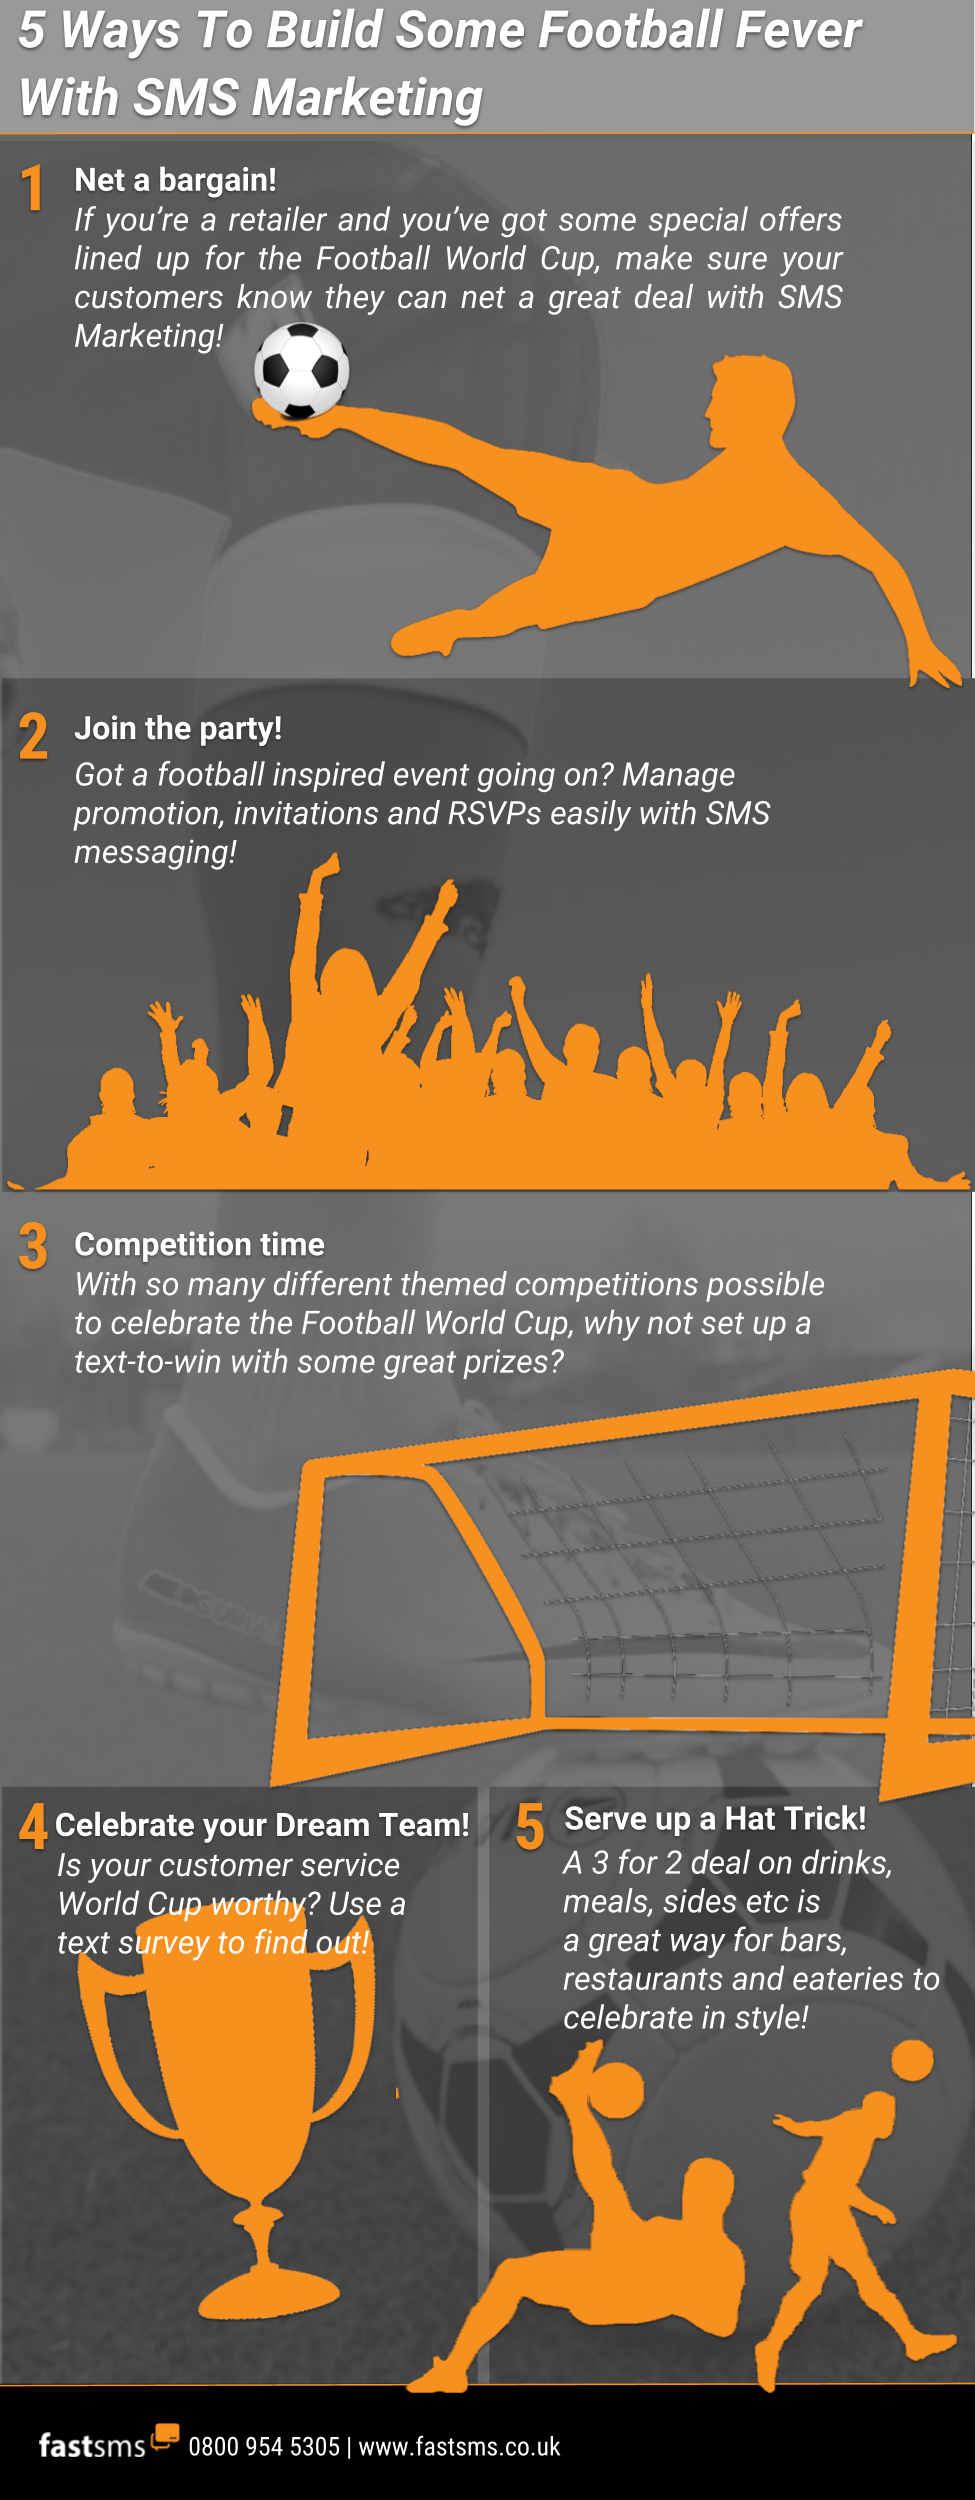 5 Football Inspired SMS Marketing Ideas - Infographic | Fastsms